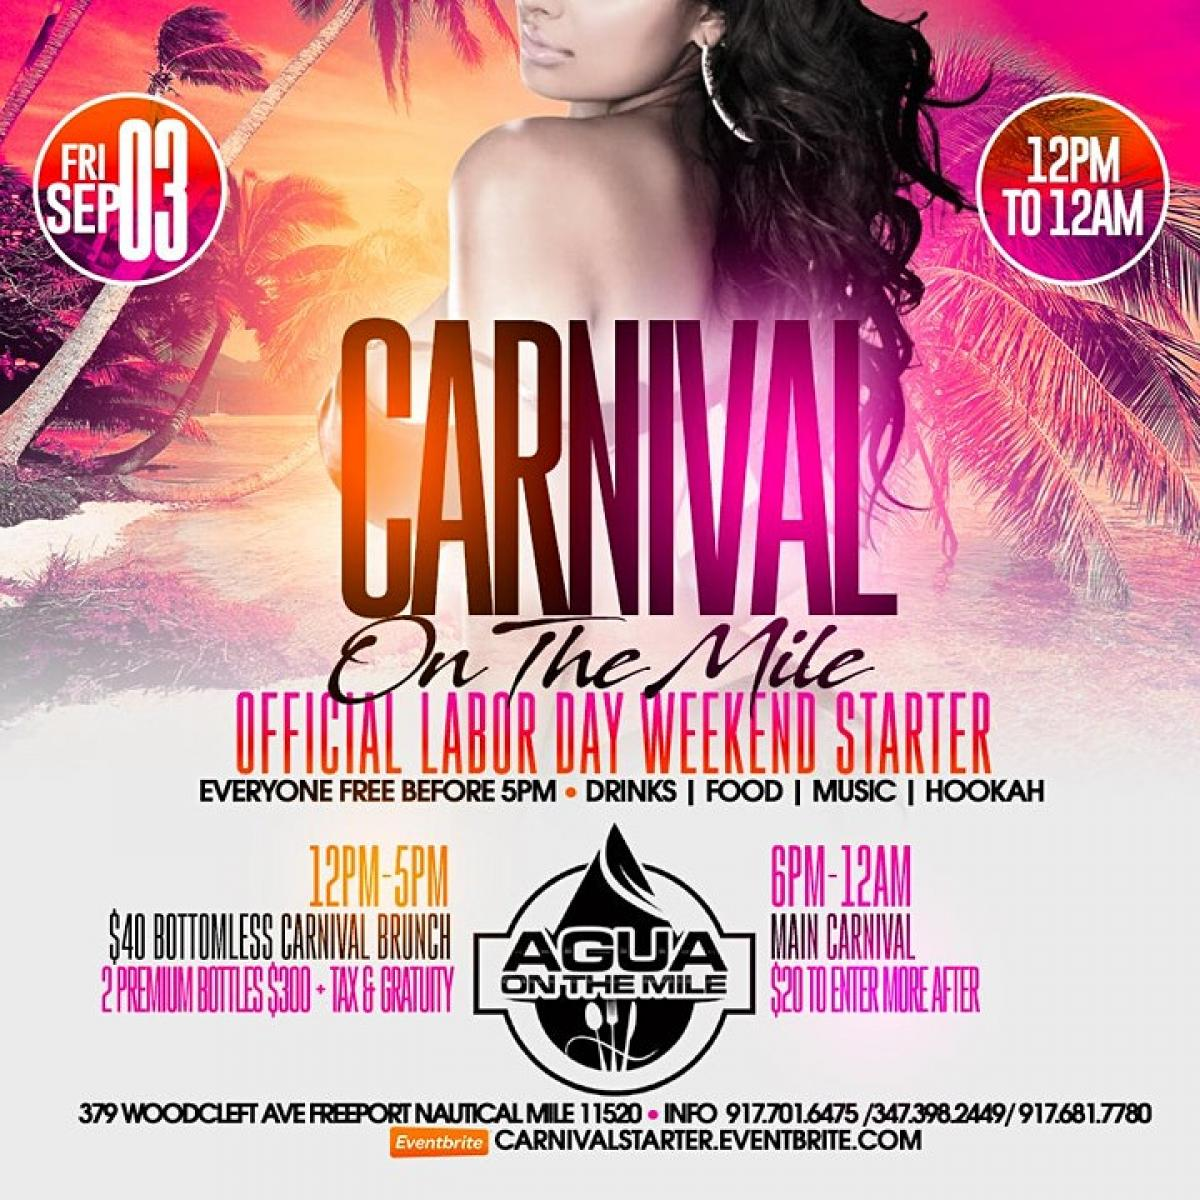 Laborday Weekend Starter flyer or graphic.